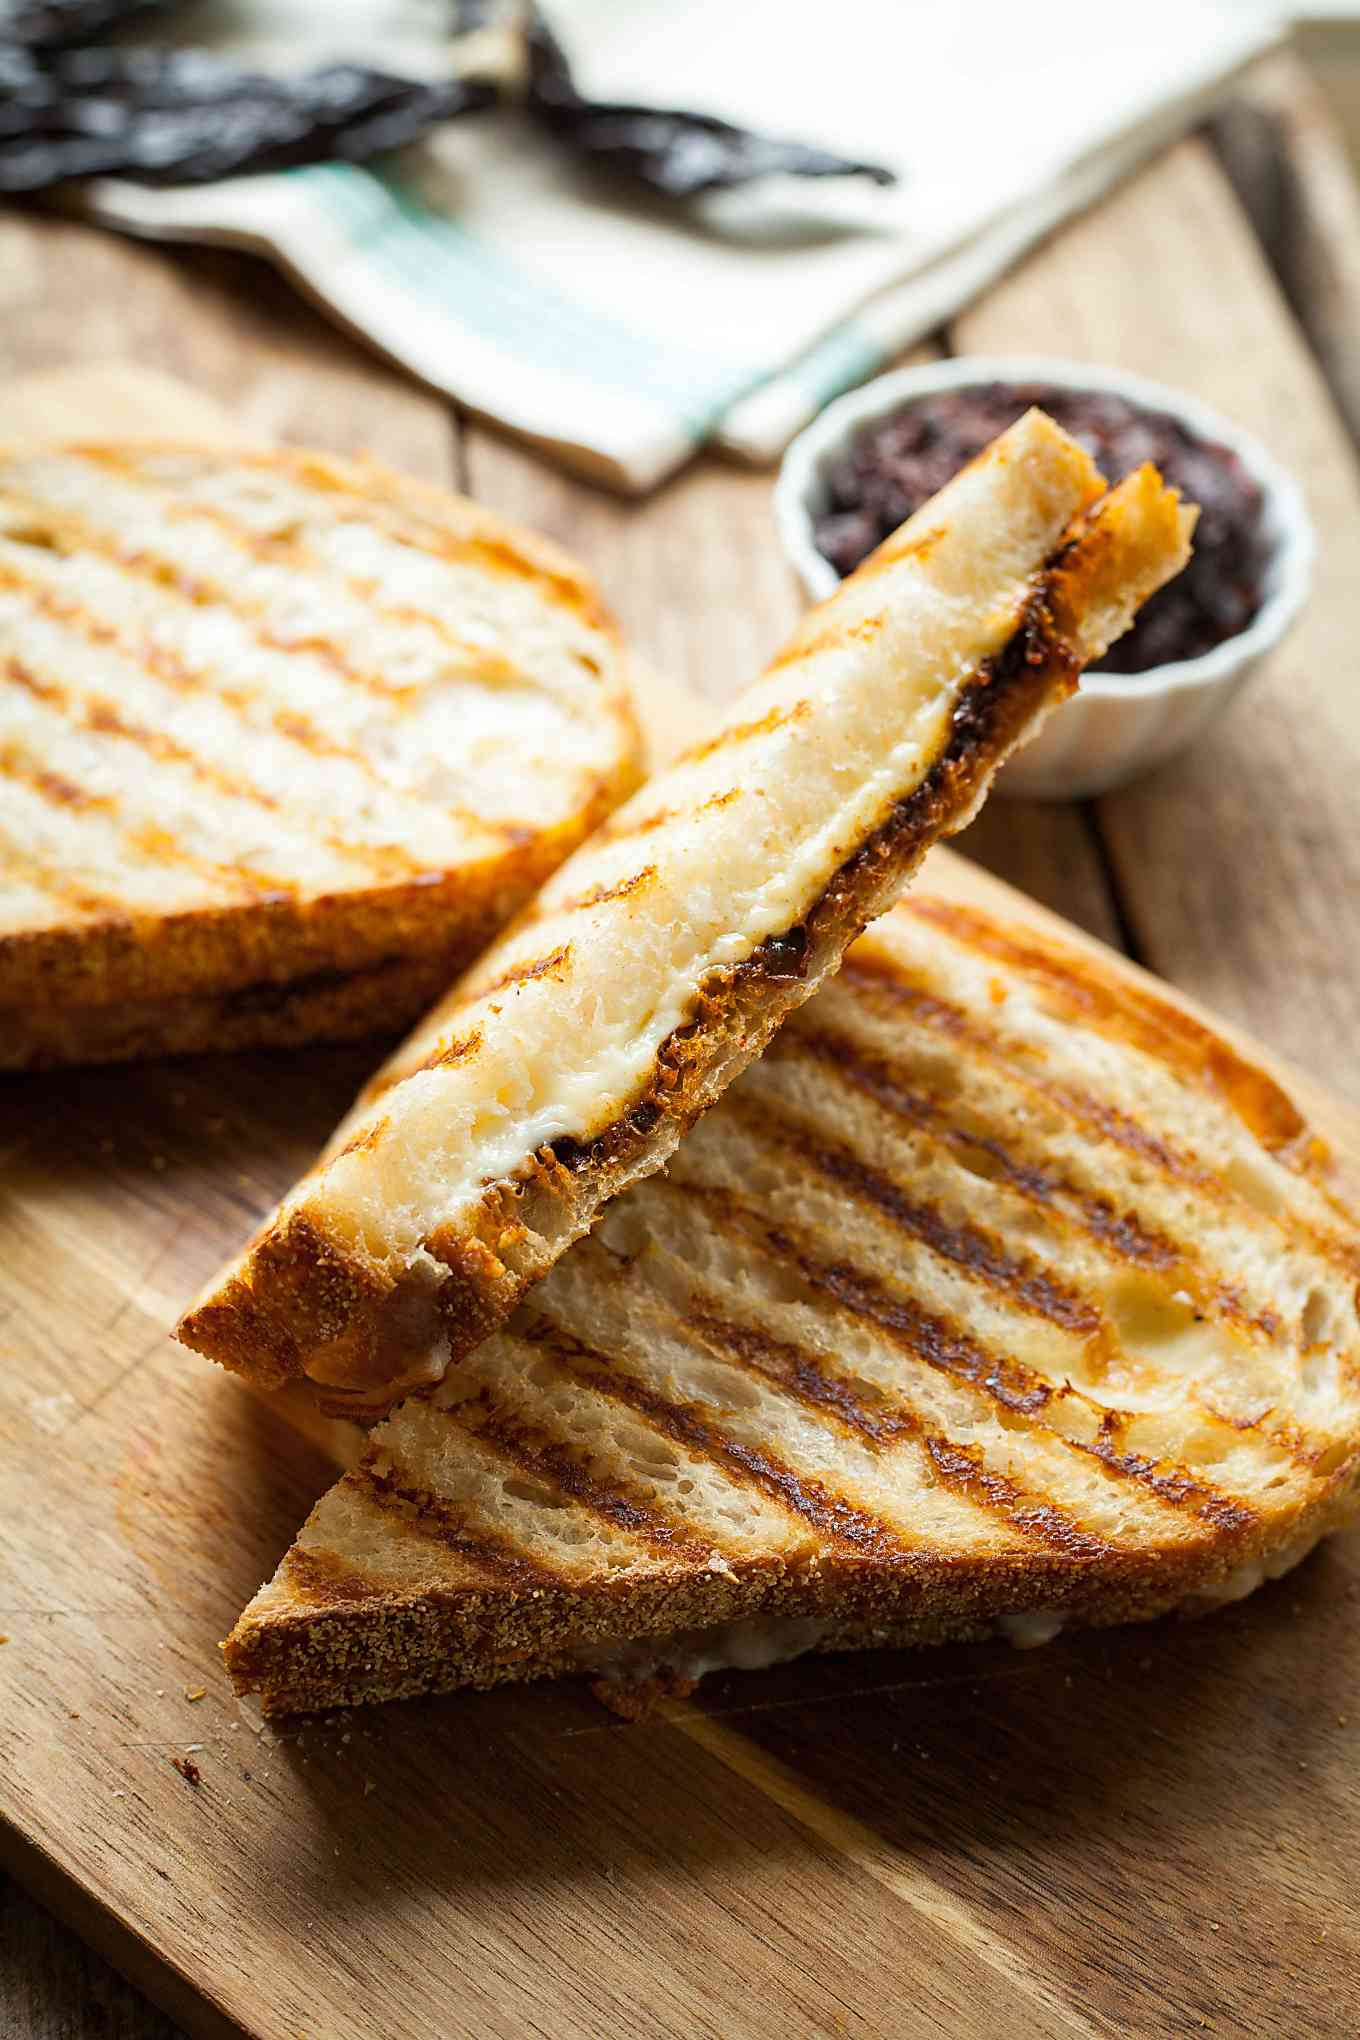 harisssa grilled cheese sandwiches on a wood cutting board